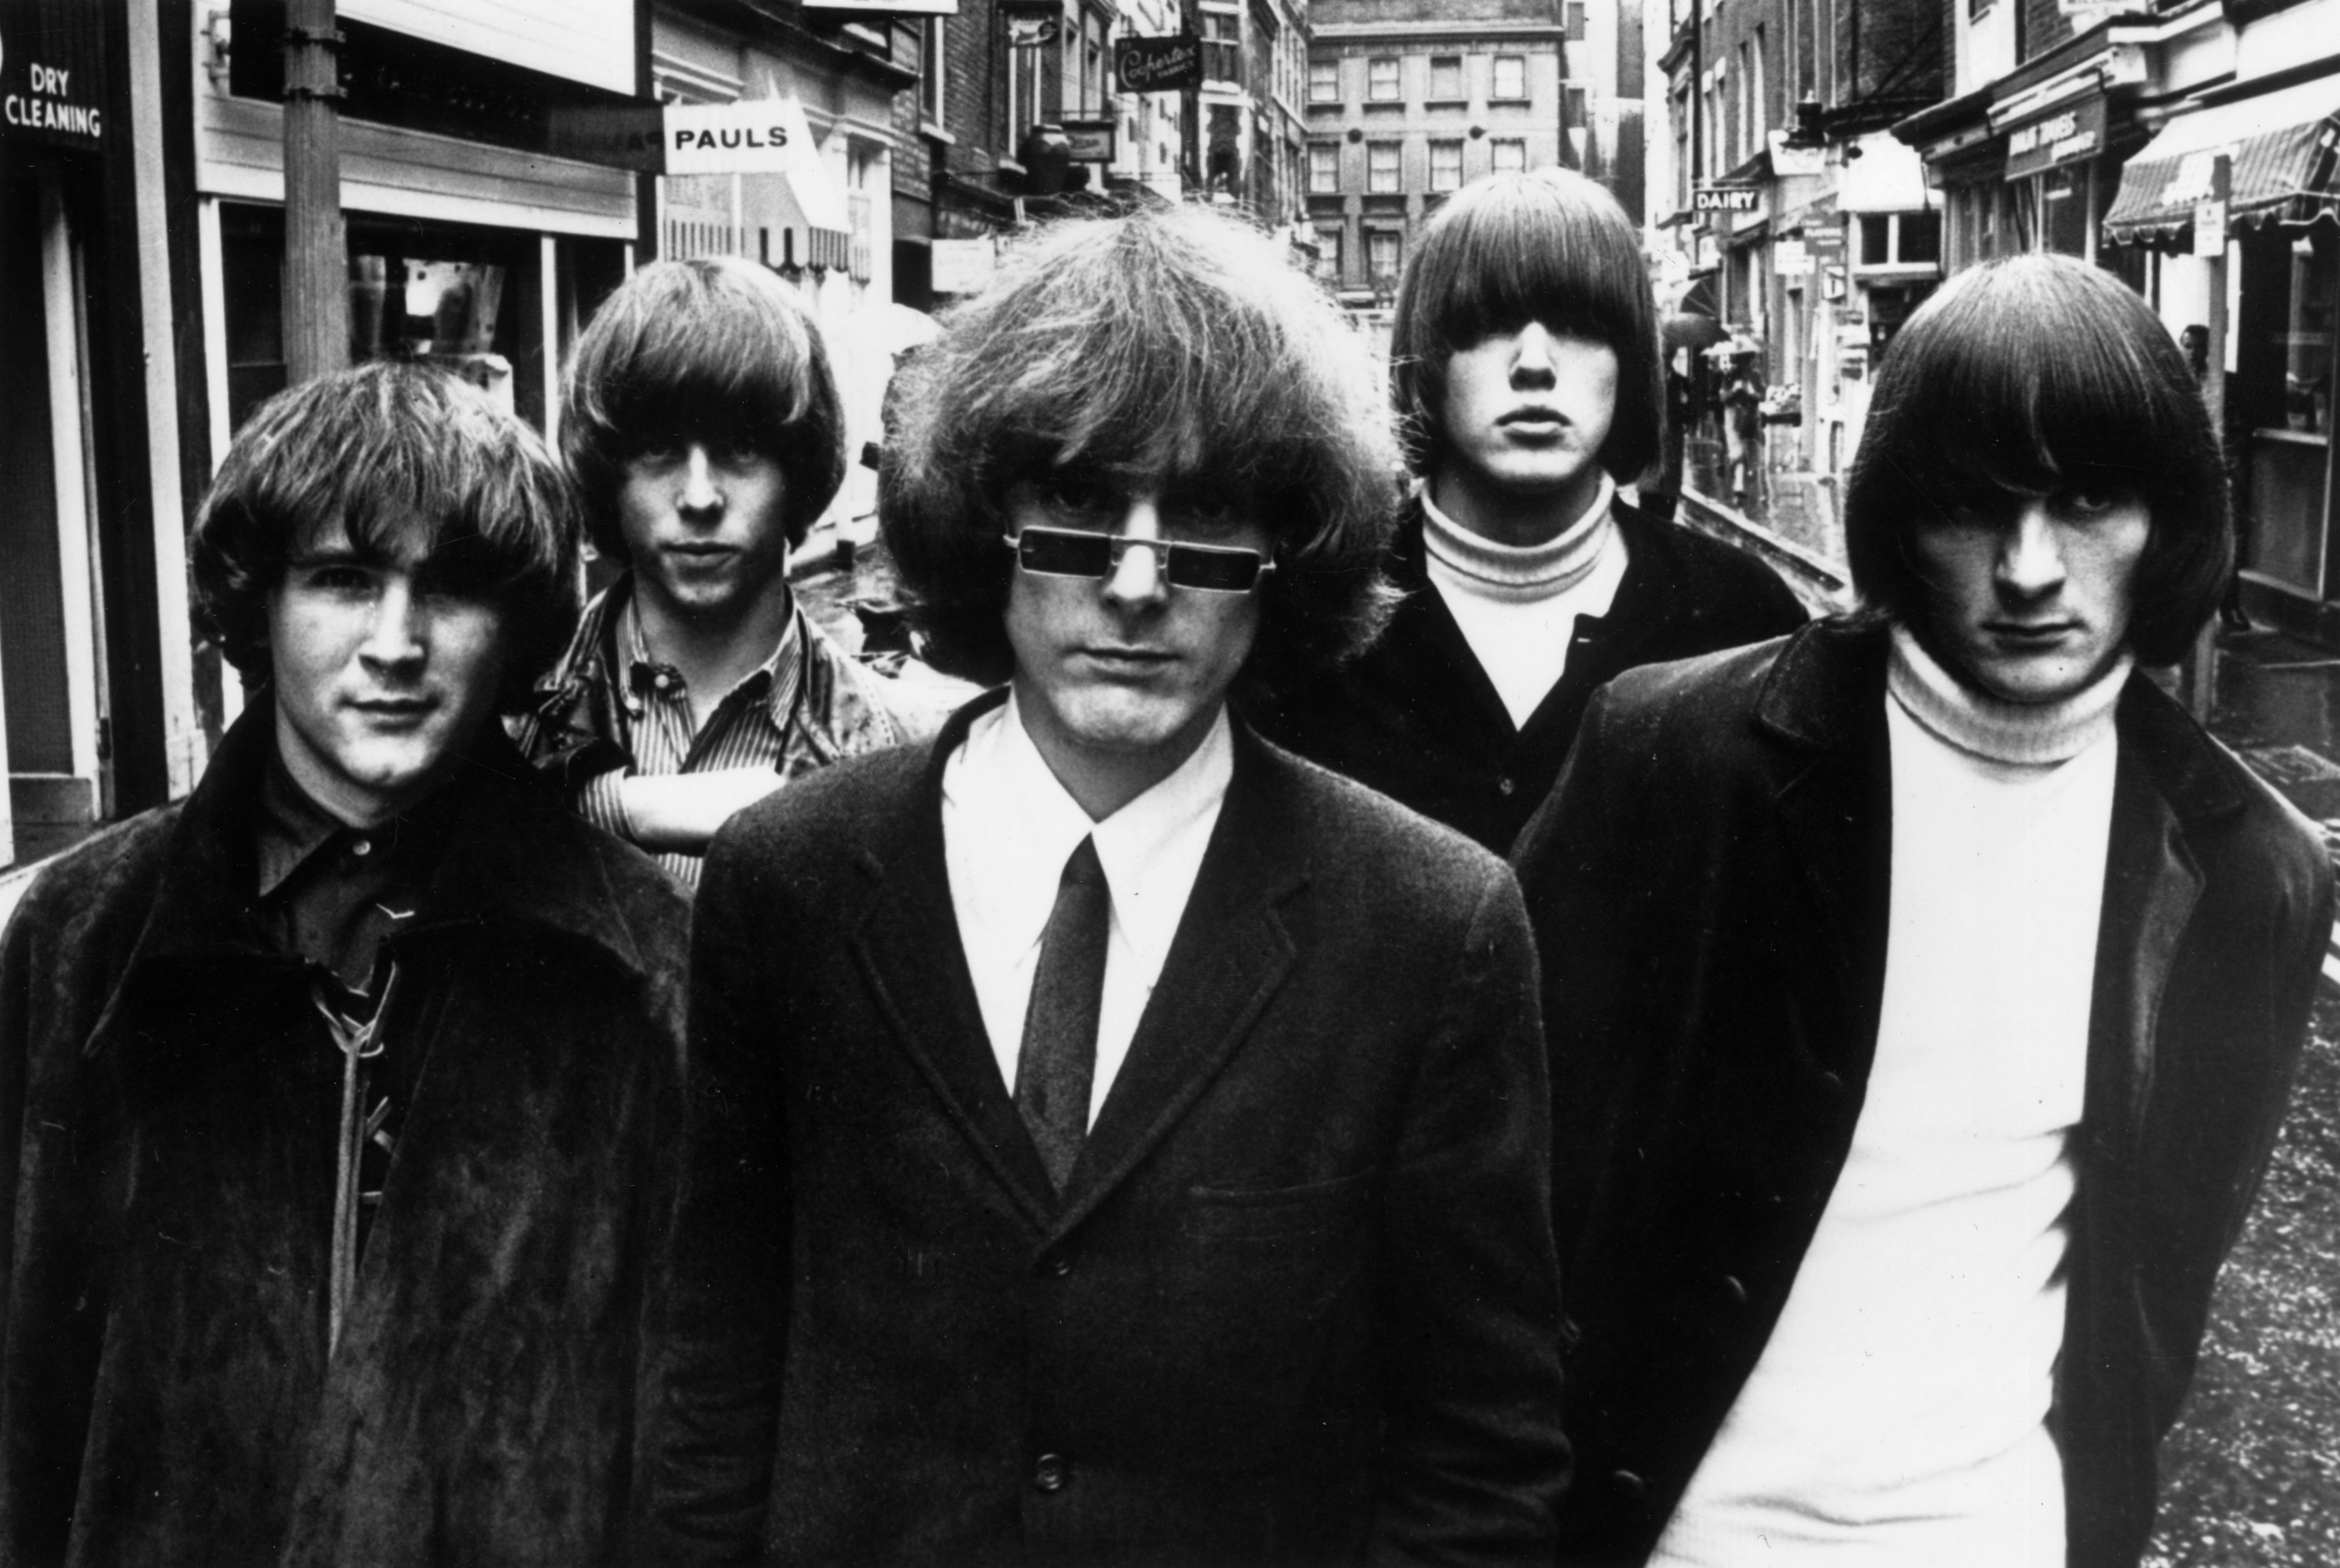 Innovative Californian folk-pop-rock combo The Byrds in London for their British tour. They are (left to right) David Crosby, Chris Hillman, Jim McGuinn, Michael Clarke and Gene Clark.